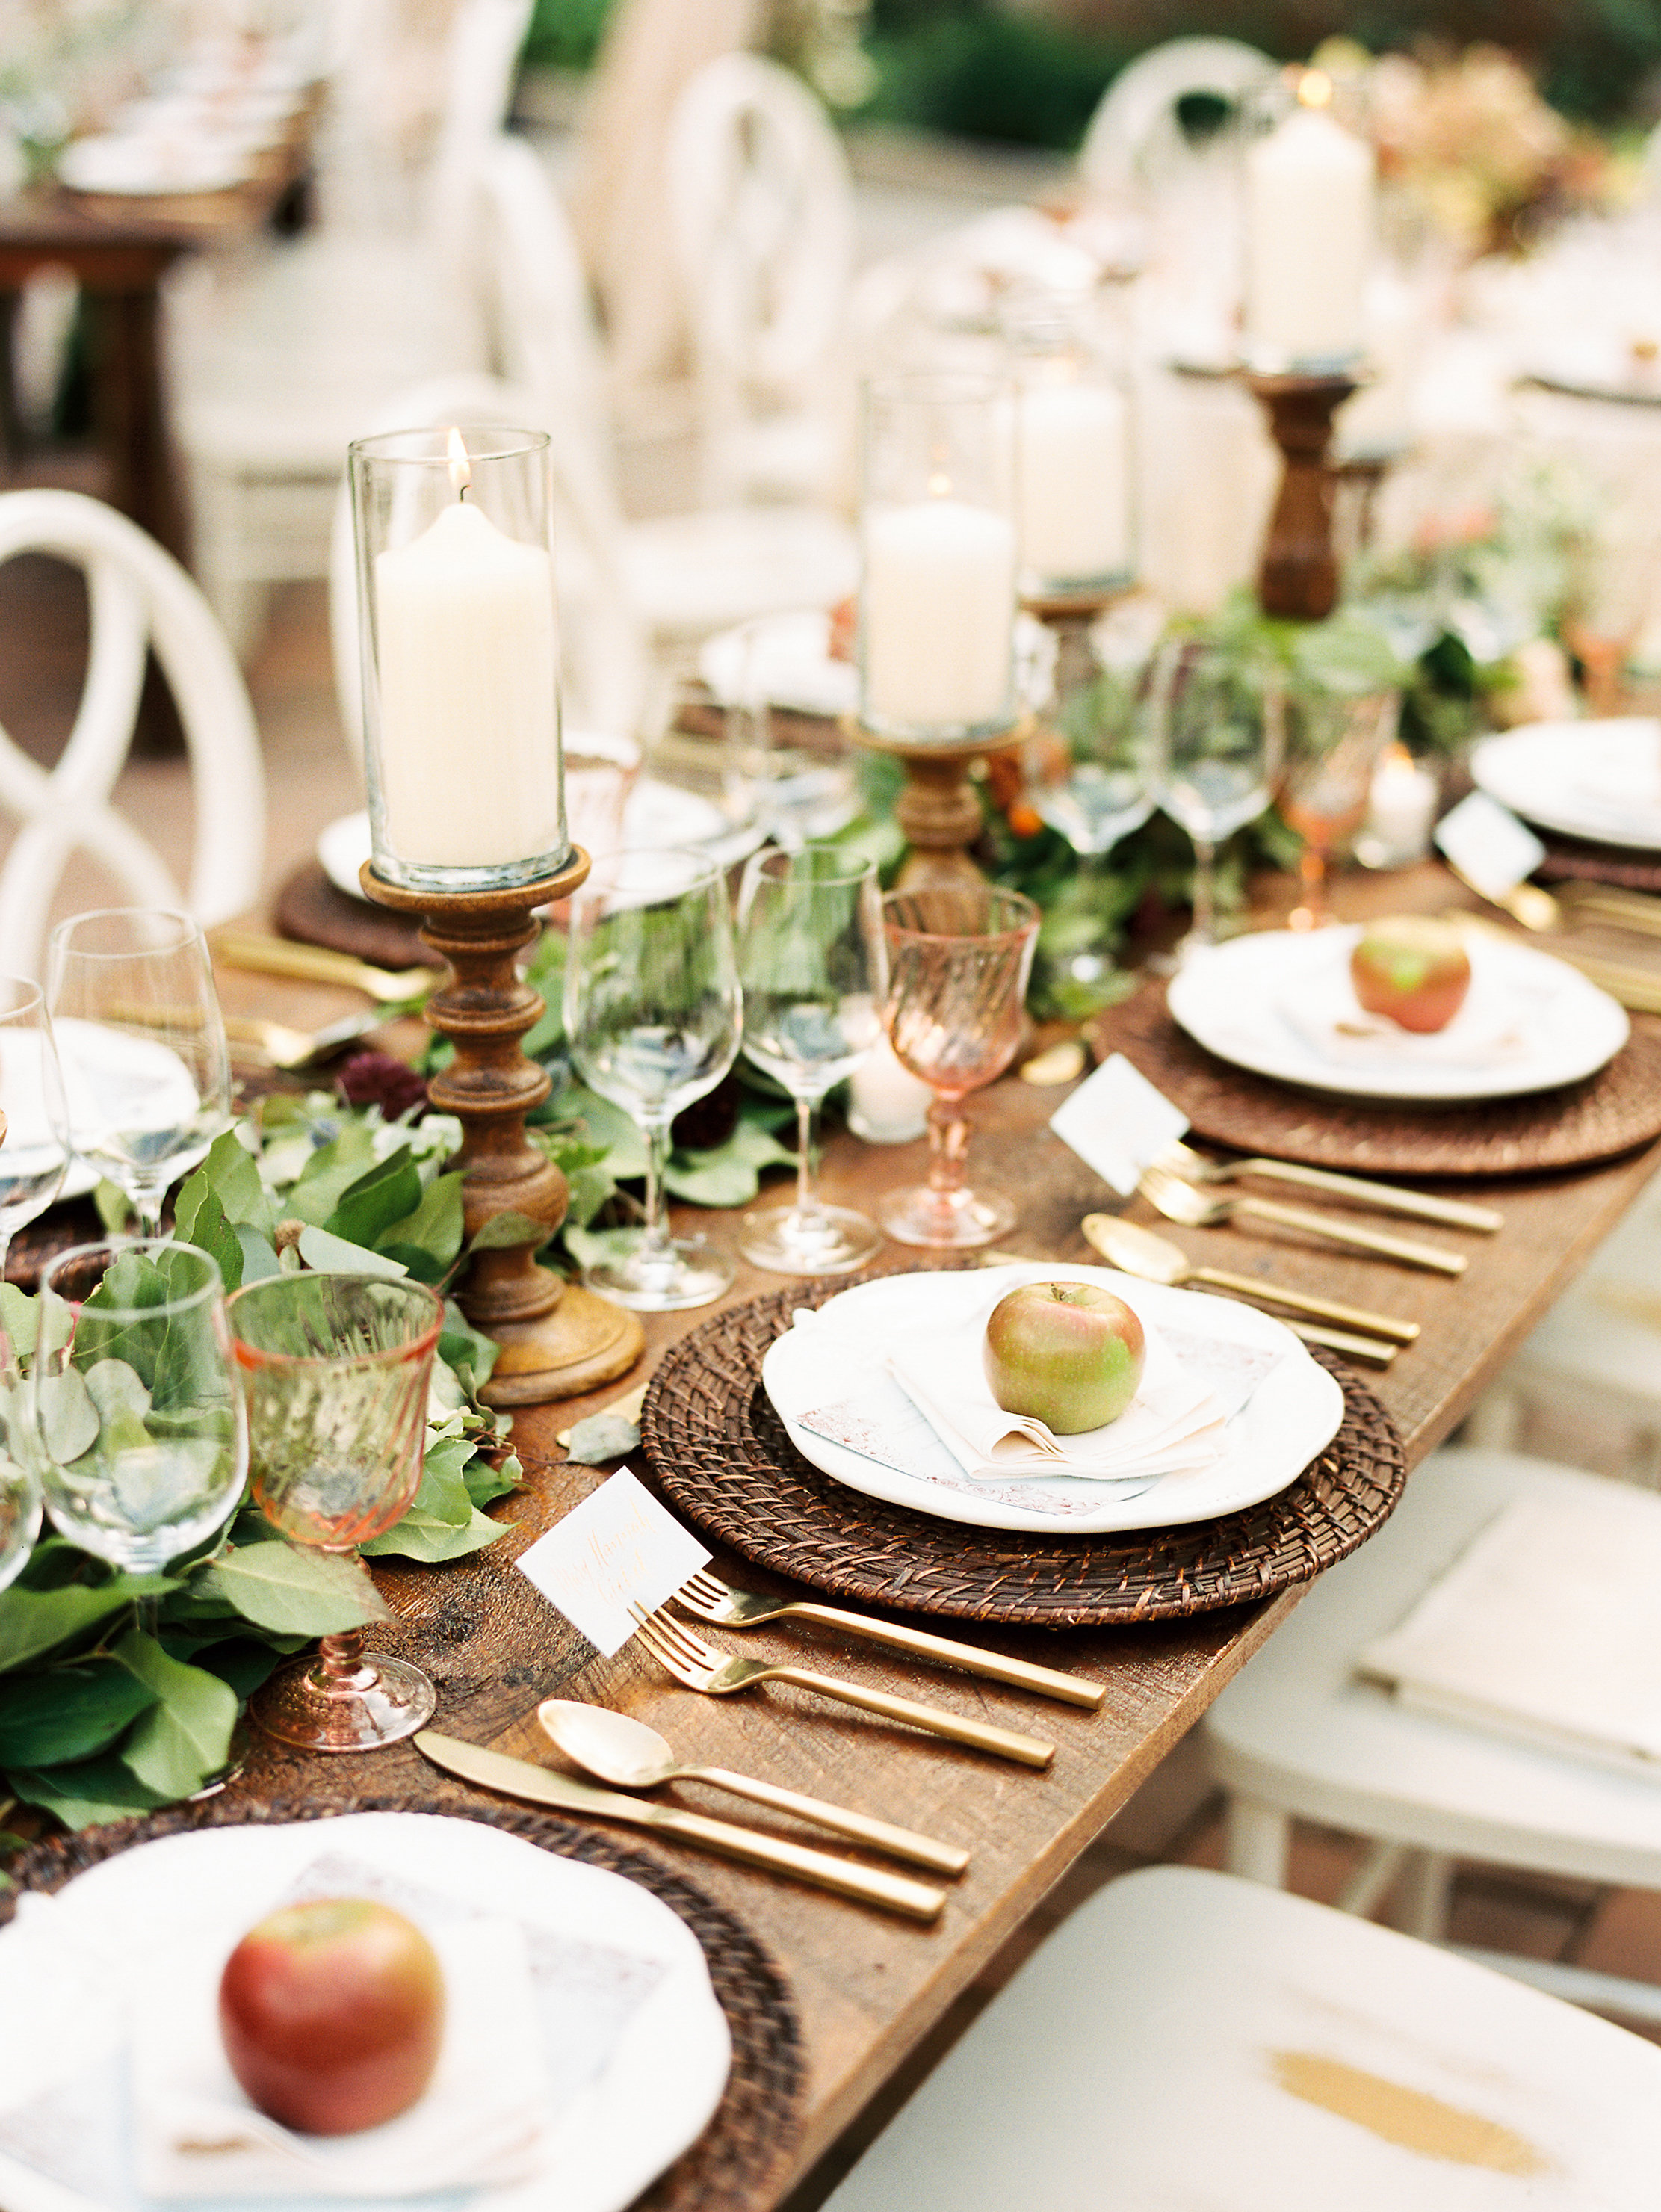 597ab-ncmountainhomeweddingreceptiontablescapeapplesdetailncmountainhomeweddingreceptiontablescapeapplesdetail.jpg